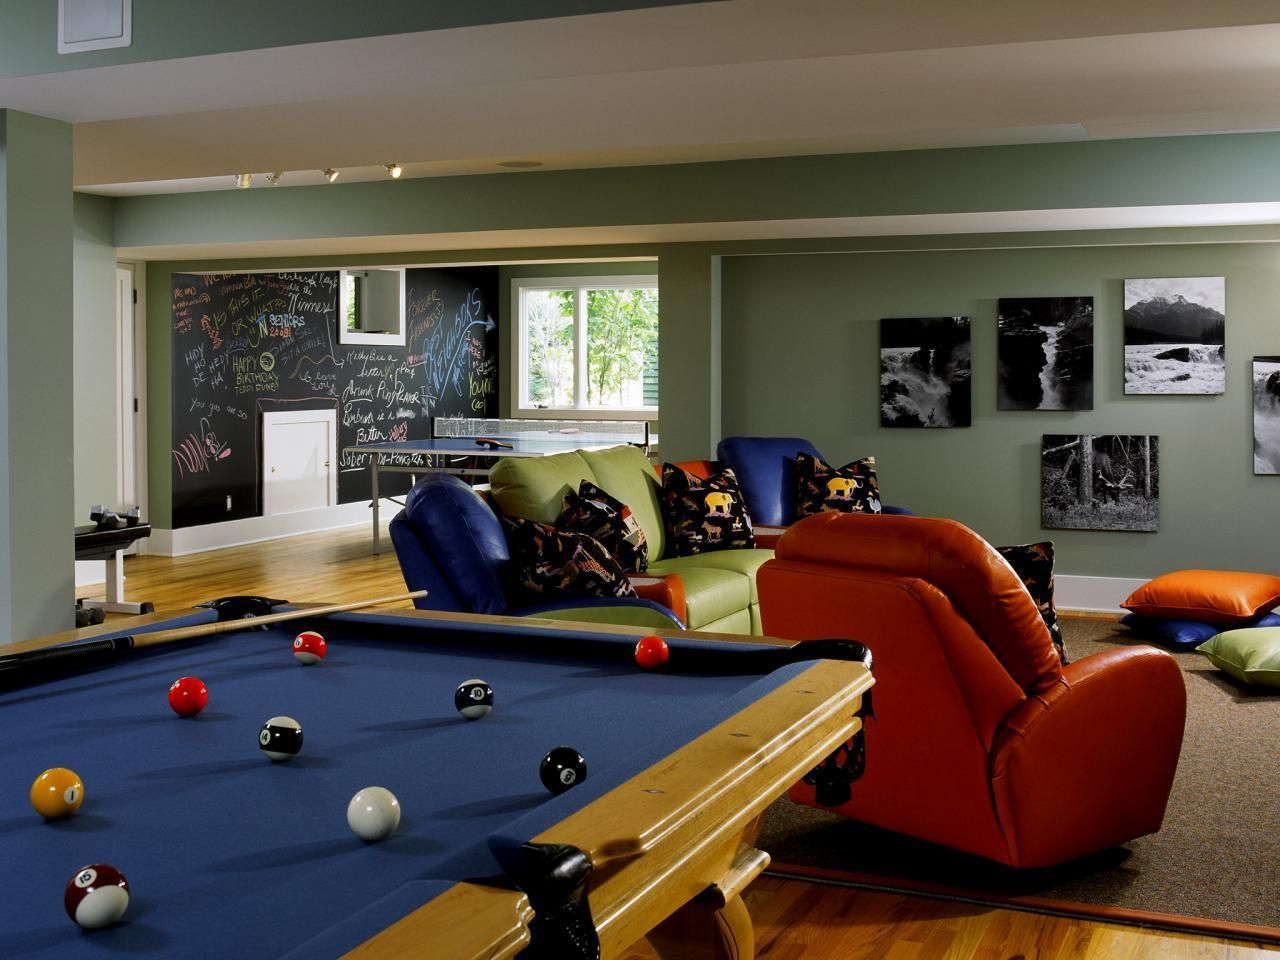 Luxury Room Decorating Games For Adults Home Decor Ideas